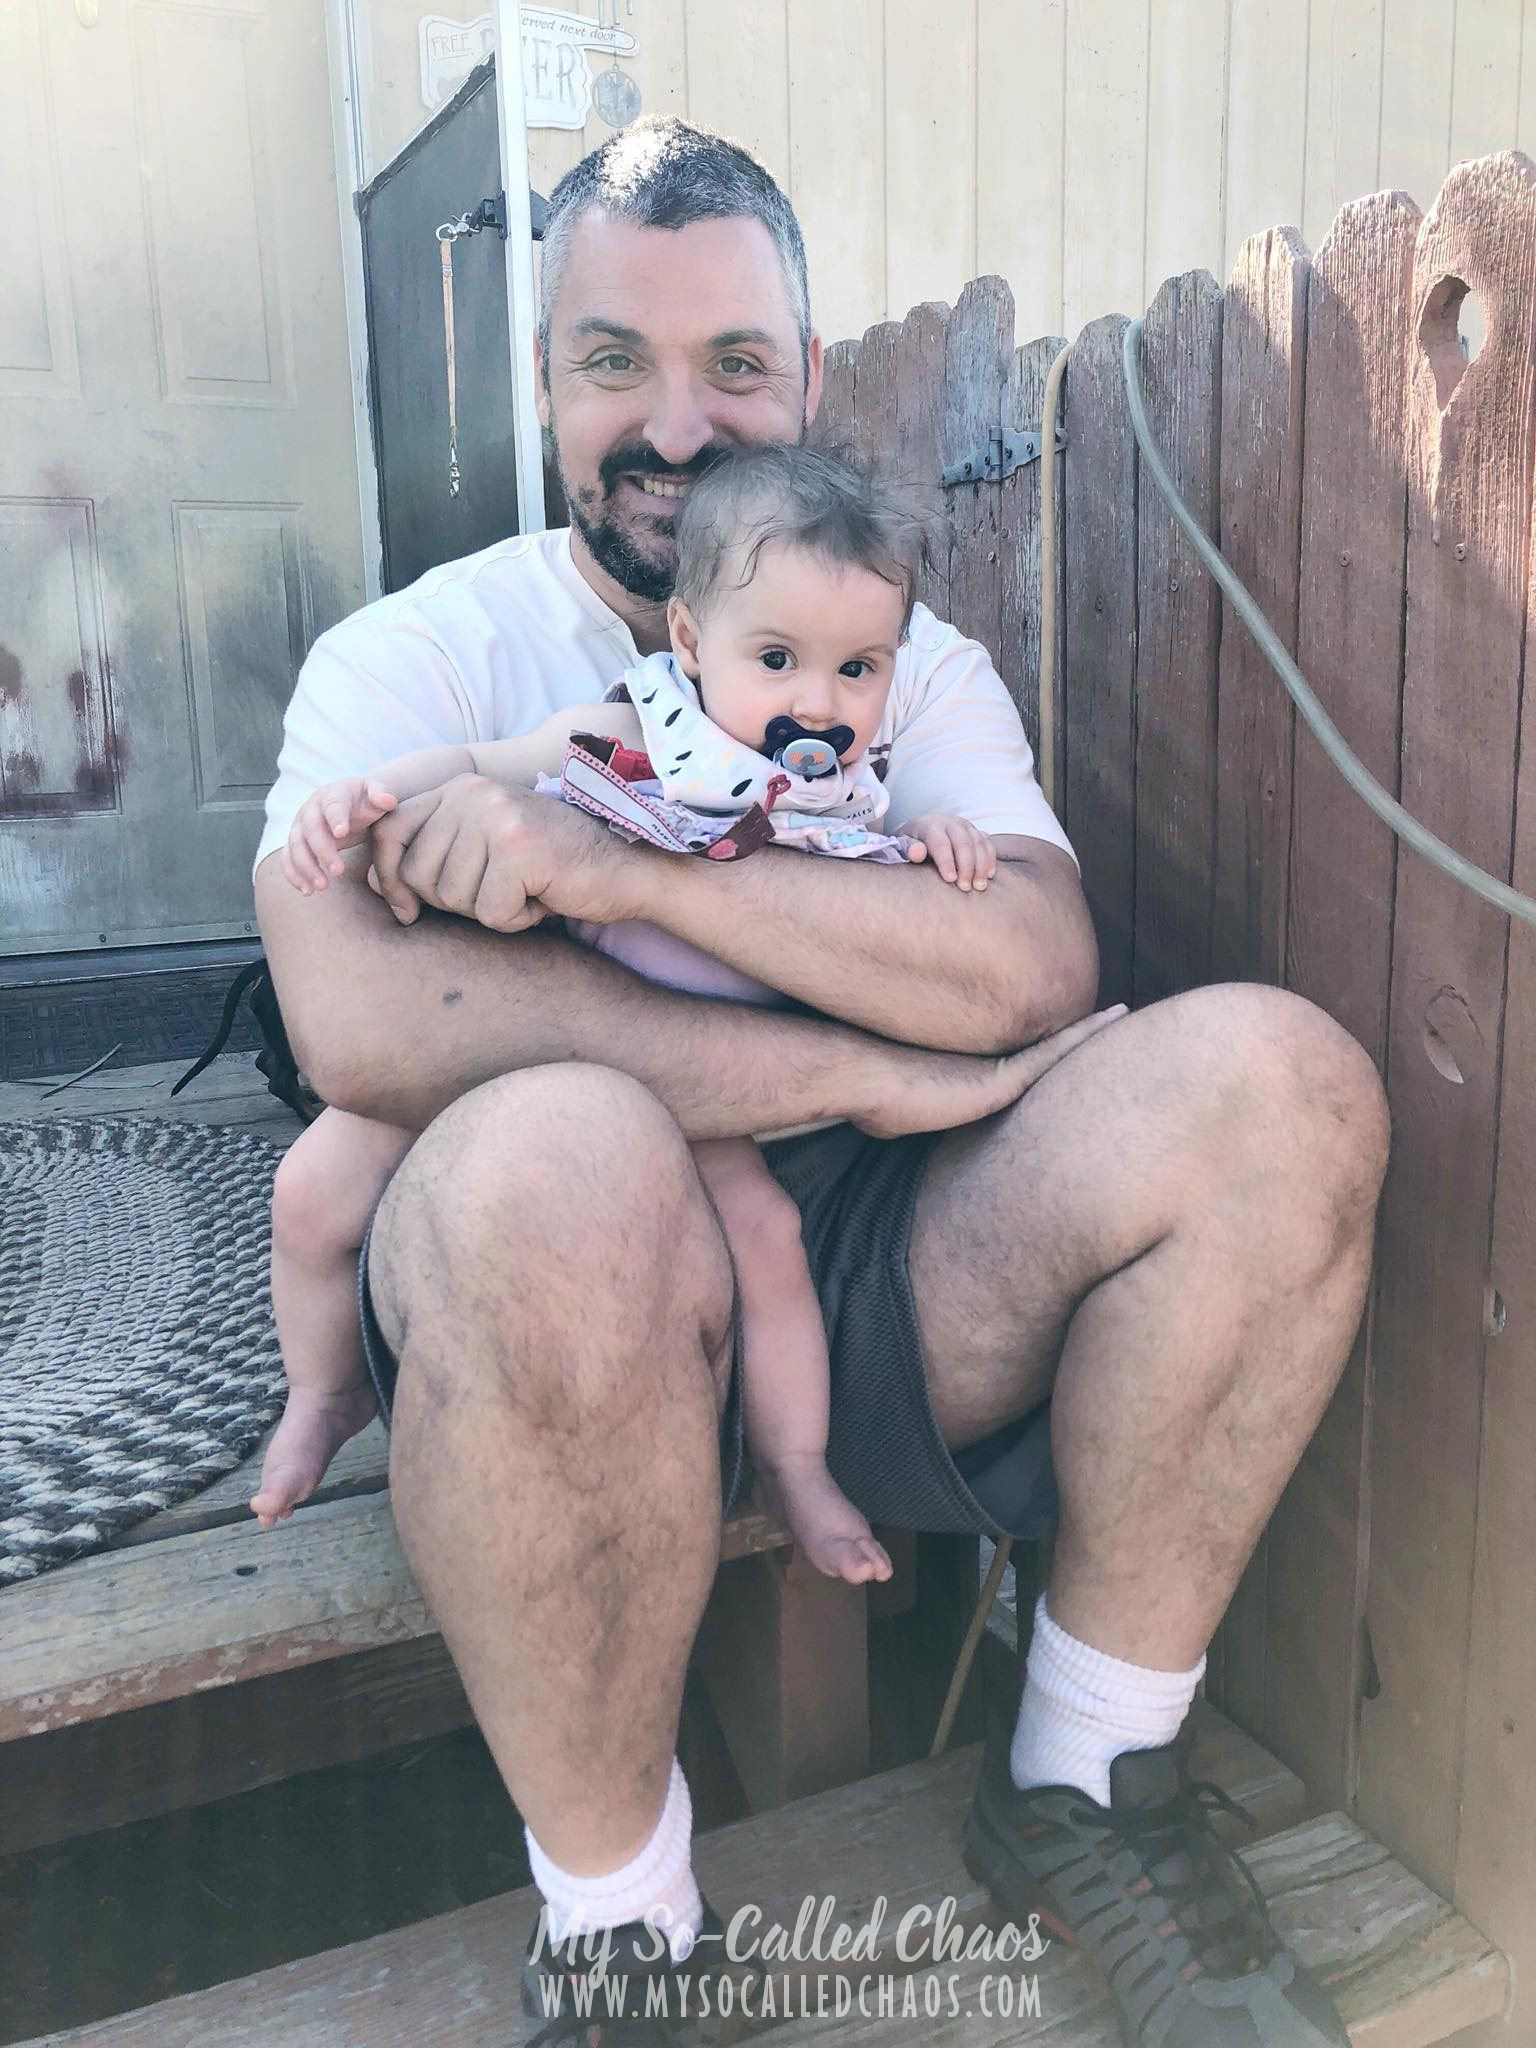 7 month old baby girl with a pacifyer being held by her dad on the porch.